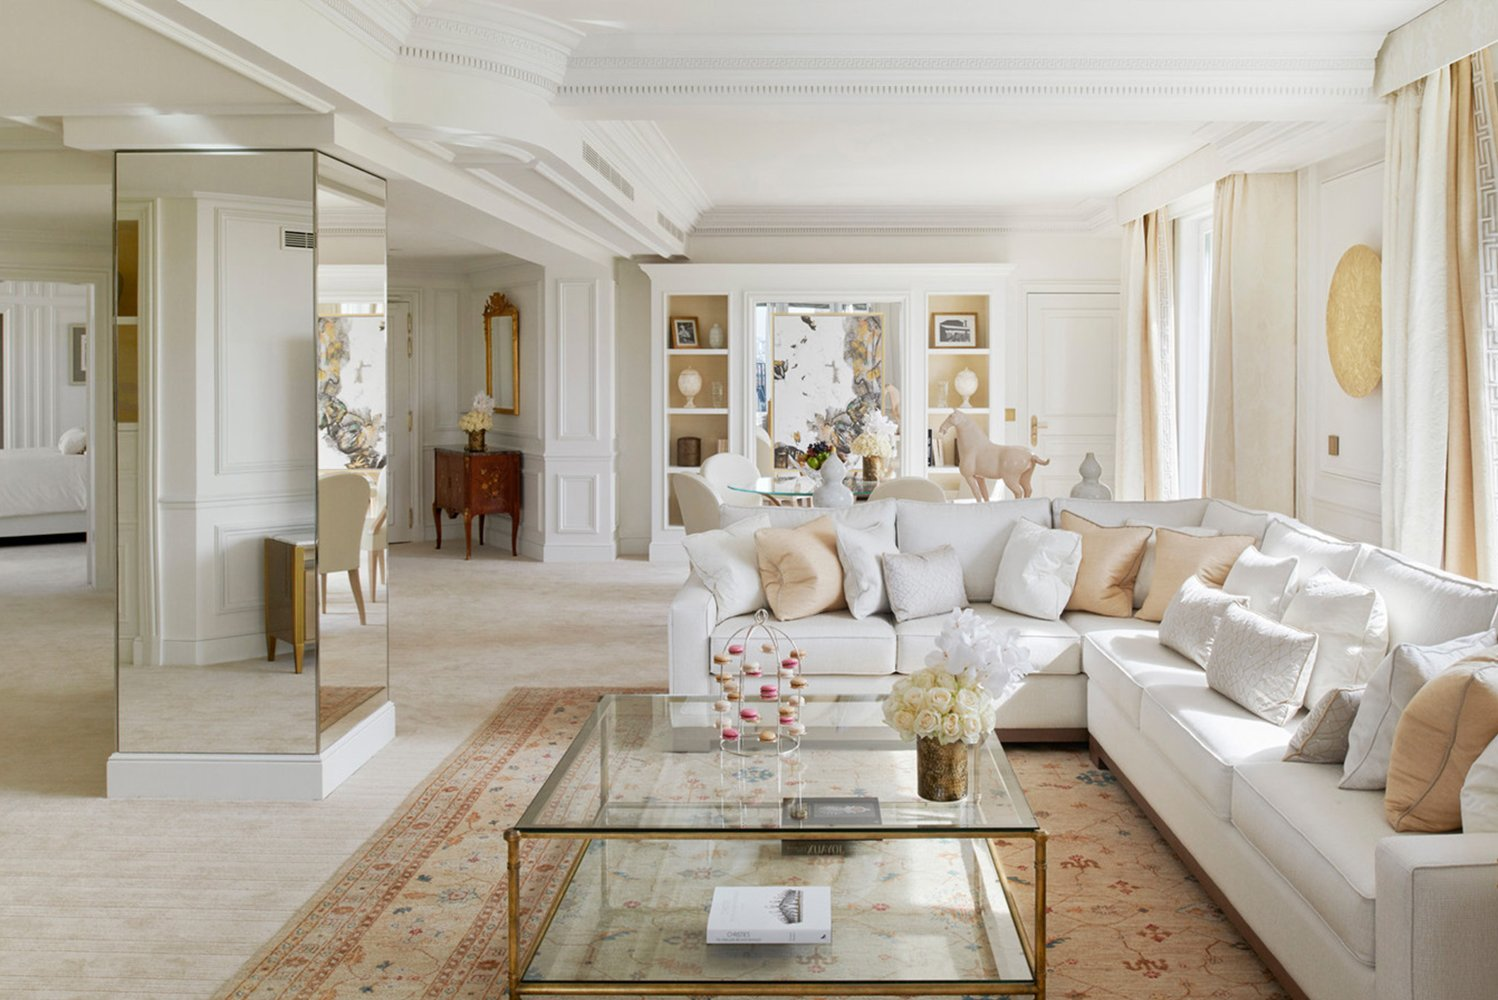 Involved in the design of the suites was French interior designer Pierre-Yves Rochon.